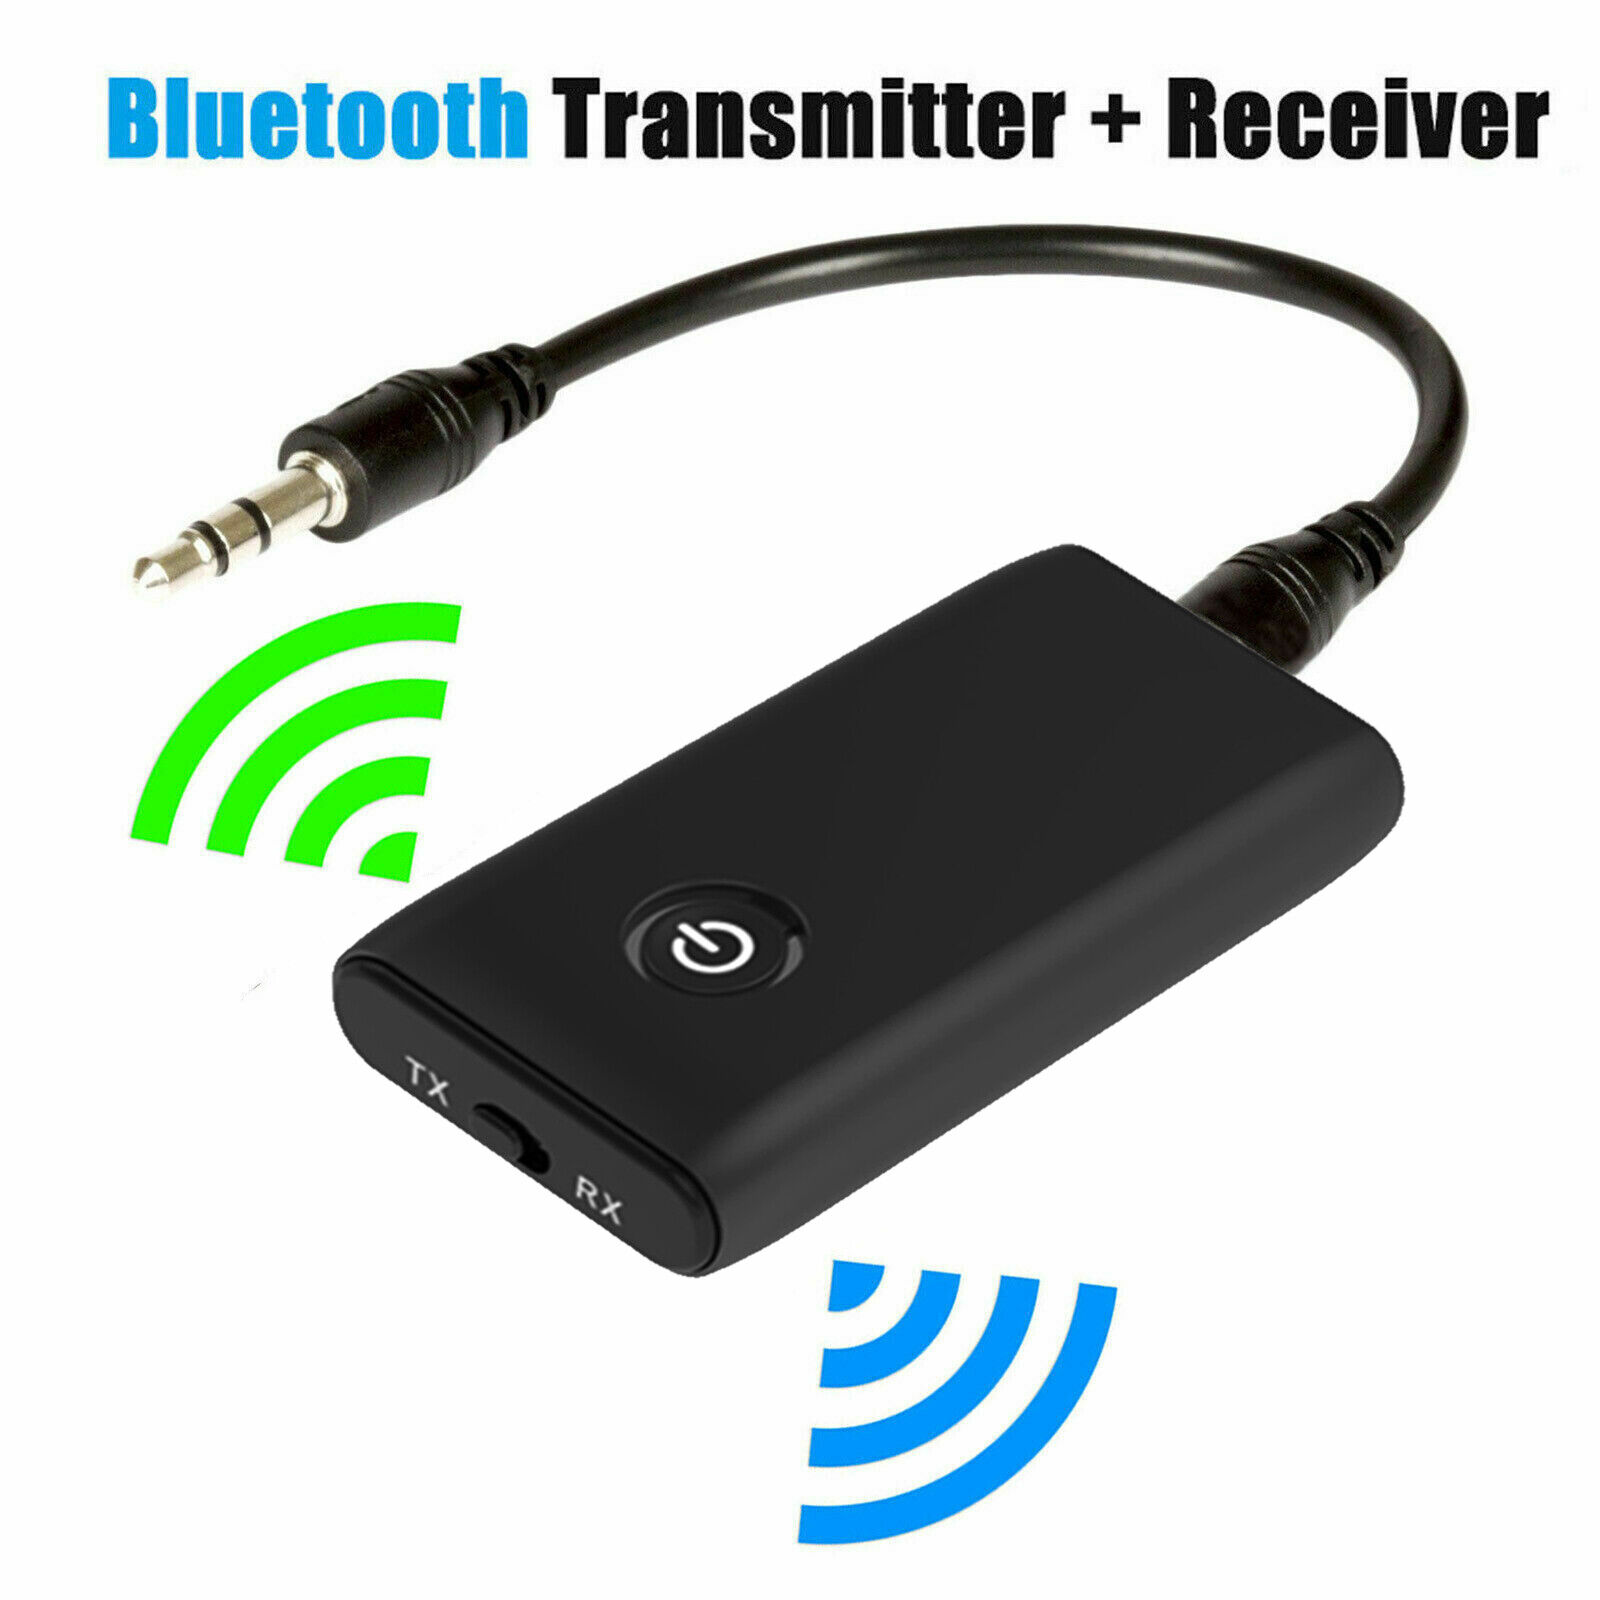 NEW 2 IN1 USB+3.5mm Audio Cable Connector Bluetooth Audio Transmitter Adapter US